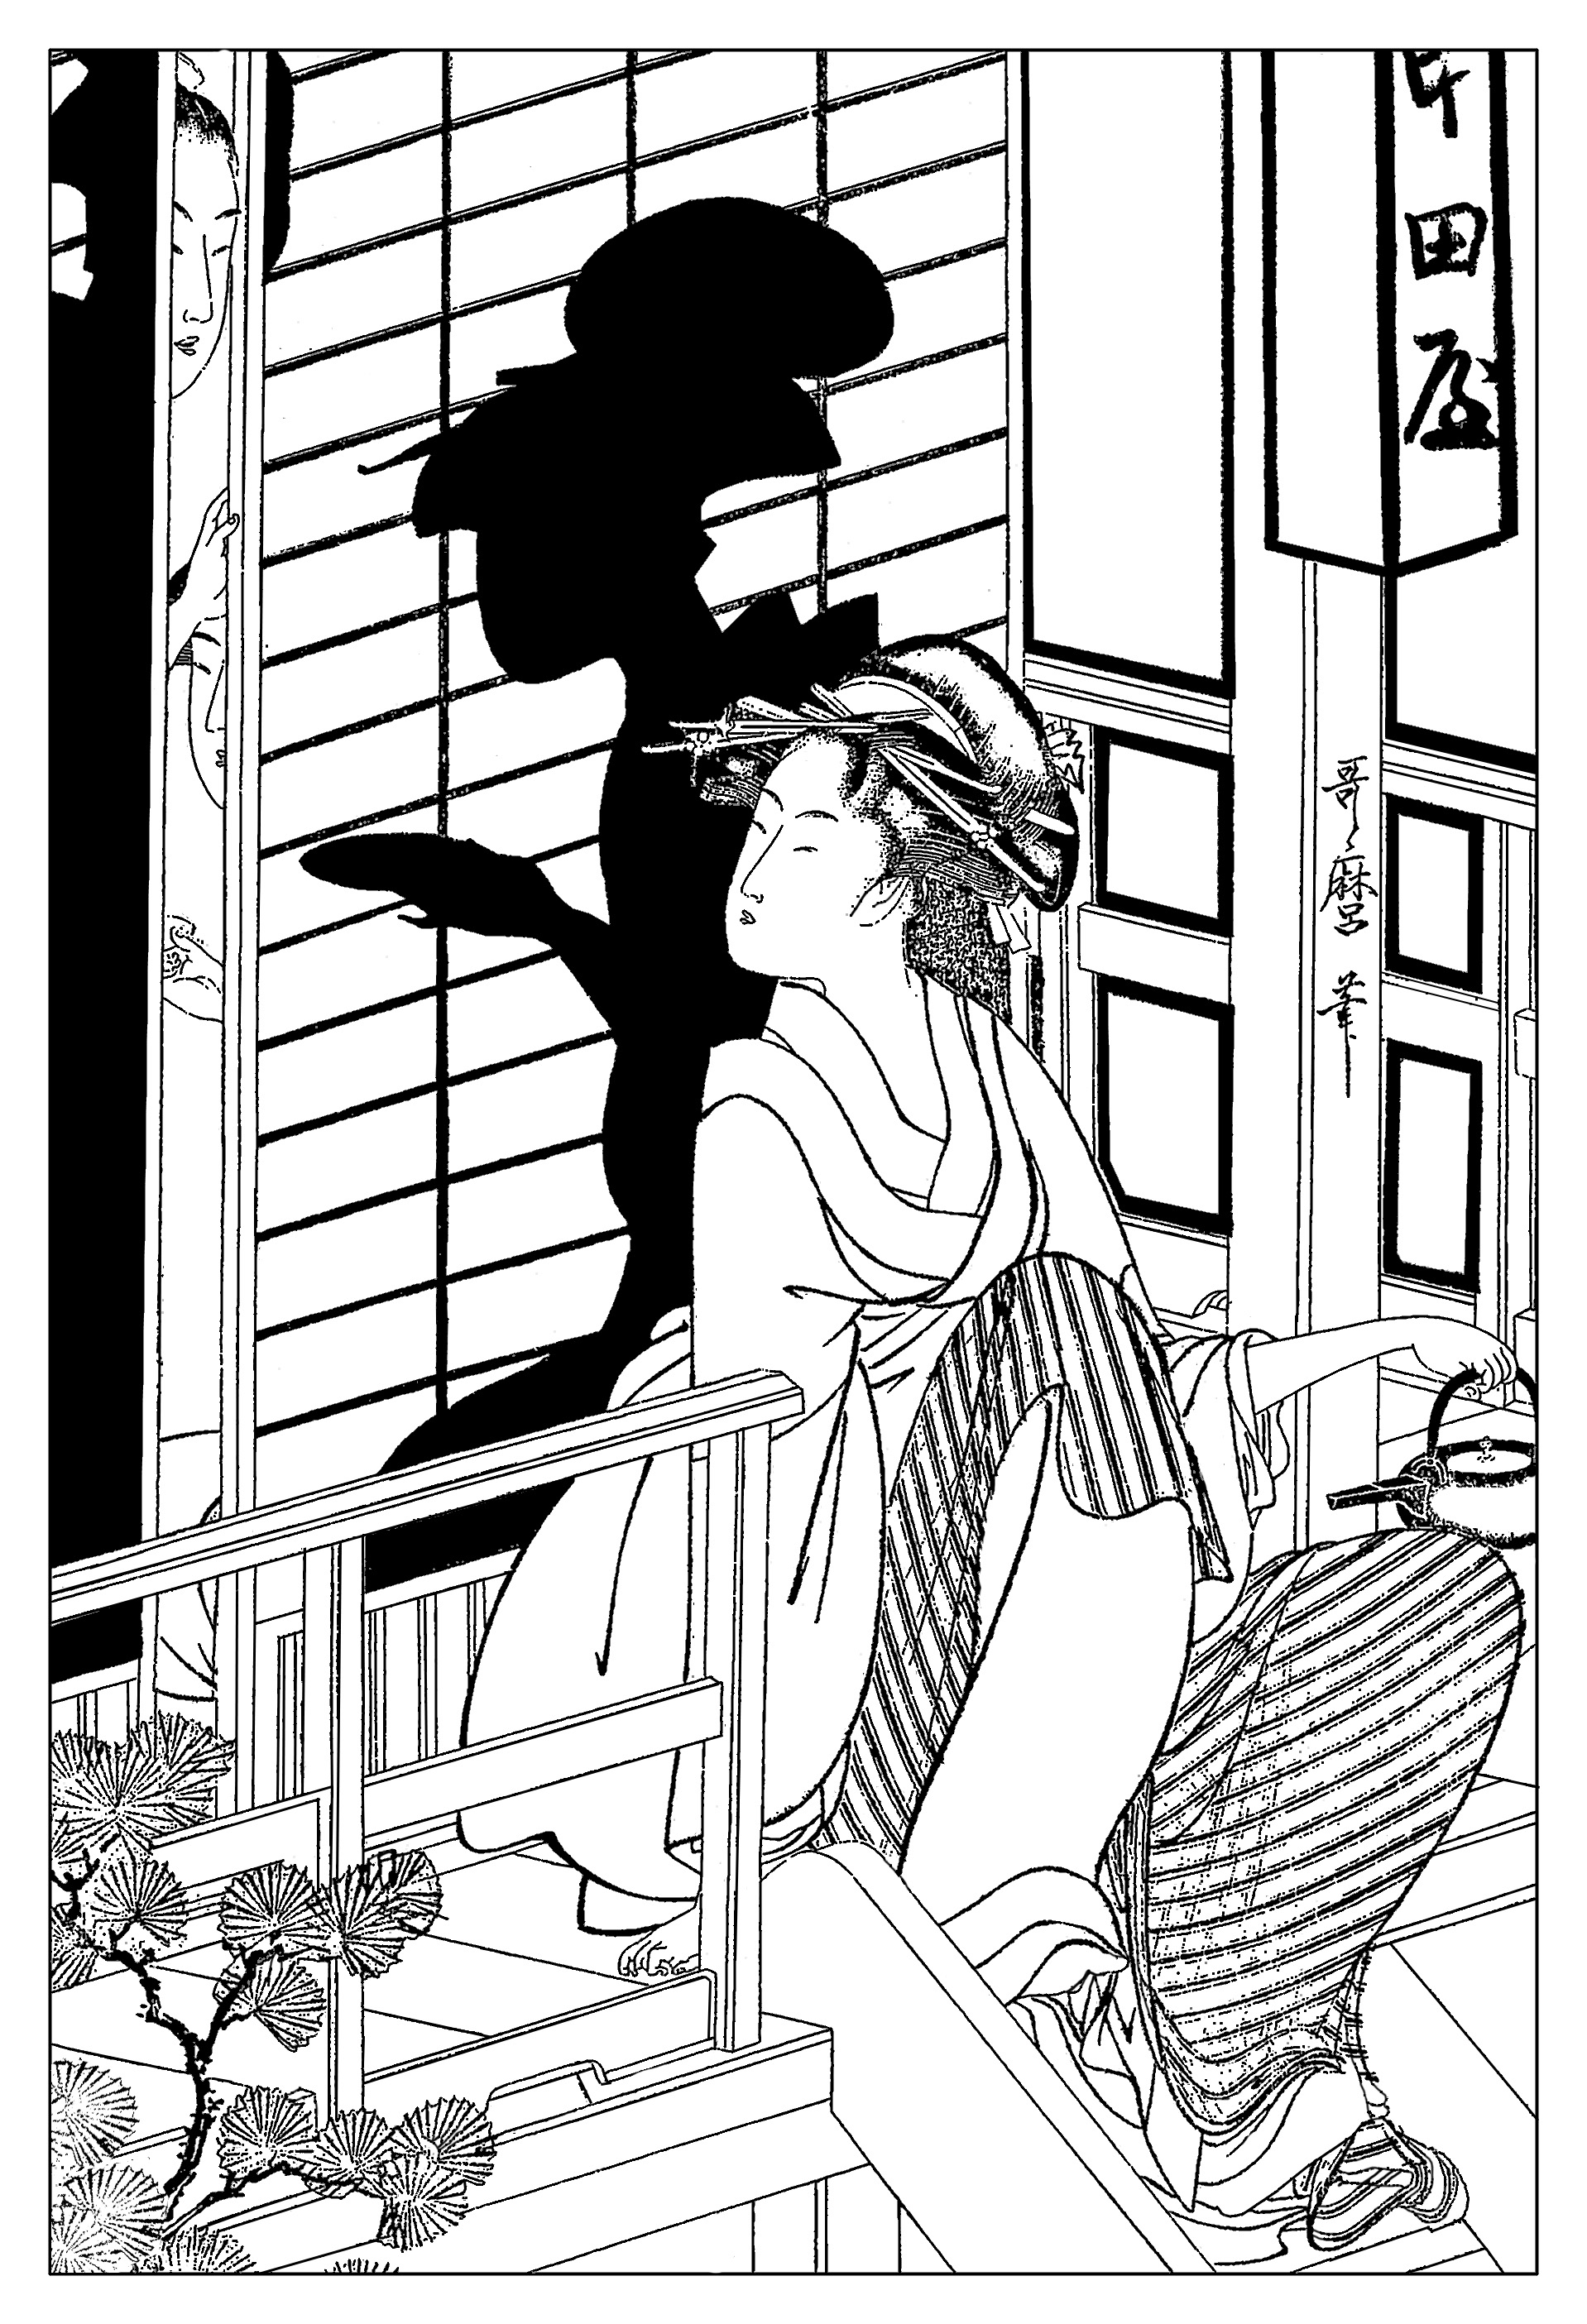 Drawing created from tea house japan adult coloring pages